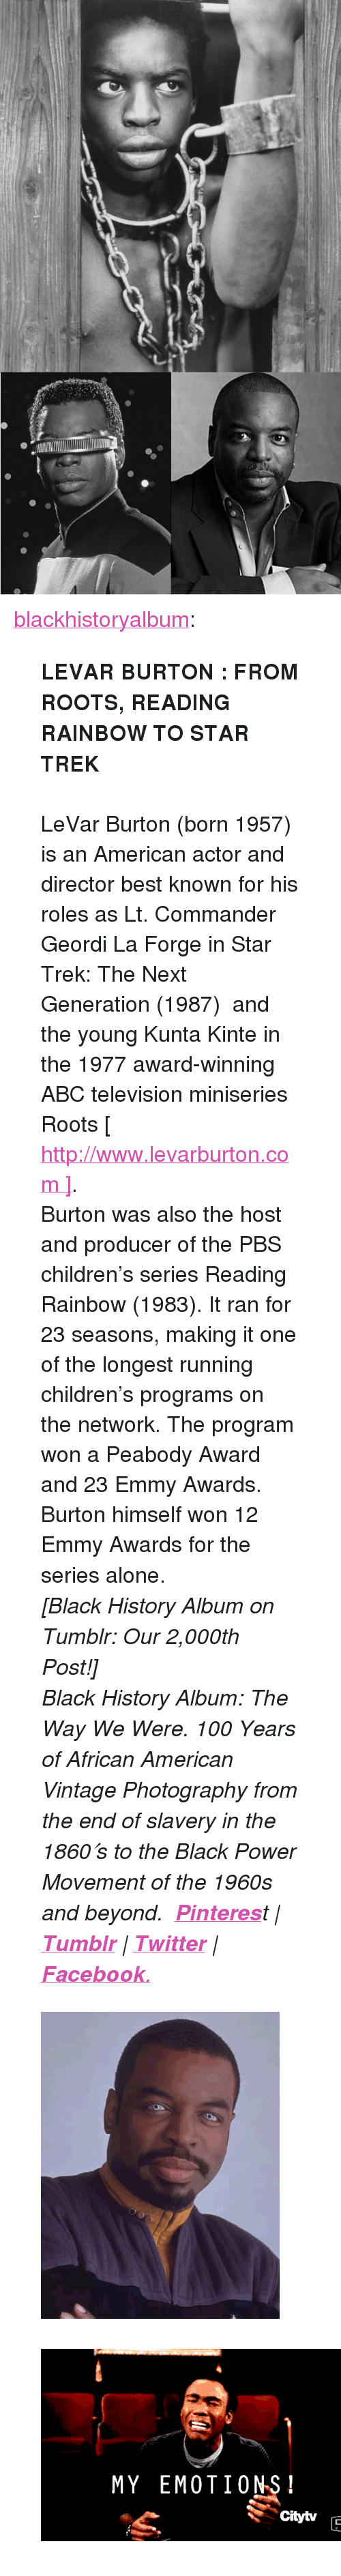 """reading rainbow: <p><a href=""""https://blackhistoryalbum.tumblr.com/post/159837957925/levar-burton-from-roots-reading-rainbow-to-star"""" class=""""tumblr_blog"""">blackhistoryalbum</a>:</p><blockquote> <p><b>LEVAR BURTON : FROM ROOTS, READING RAINBOW TO STAR TREK</b><br/><br/>LeVar Burton (born 1957) is an American actor and director best known for his roles as Lt. Commander Geordi La Forge in Star Trek: The Next Generation (1987) and the young Kunta Kinte in the 1977 award-winning ABC television miniseries Roots [ <a href=""""http://www.levarburton.com/"""">http://www.levarburton.com ]</a>. <br/></p> <p>Burton was also the host and producer of the PBS children's series Reading Rainbow (1983). It ran for 23 seasons, making it one of the longest running children's programs on the network. The program won a Peabody Award and 23 Emmy Awards. Burton himself won 12 Emmy Awards for the series alone.<i><i><br/></i></i></p> <p><i>[Black History Album on Tumblr: Our 2,000th Post!]</i></p> <p><i><i>Black History Album: The</i> Way We Were. <i>100 Years of African American Vintage  <i>Photography from the end of slavery in the 1860′s to the Black Power Movement of the 1960s and beyond.</i>   <b><a href=""""http://t.umblr.com/redirect?z=https%3A%2F%2Fwww.pinterest.com%2Fblackheritage%2Fpins%2F&amp;t=MWY1MWFhMTliYTI4MjI2ODNhNWM3ZjhjYmU5ODhiN2FmN2ZmODAzNyxCNkhnclFwbg%3D%3D"""">Pinteres</a></b>t 